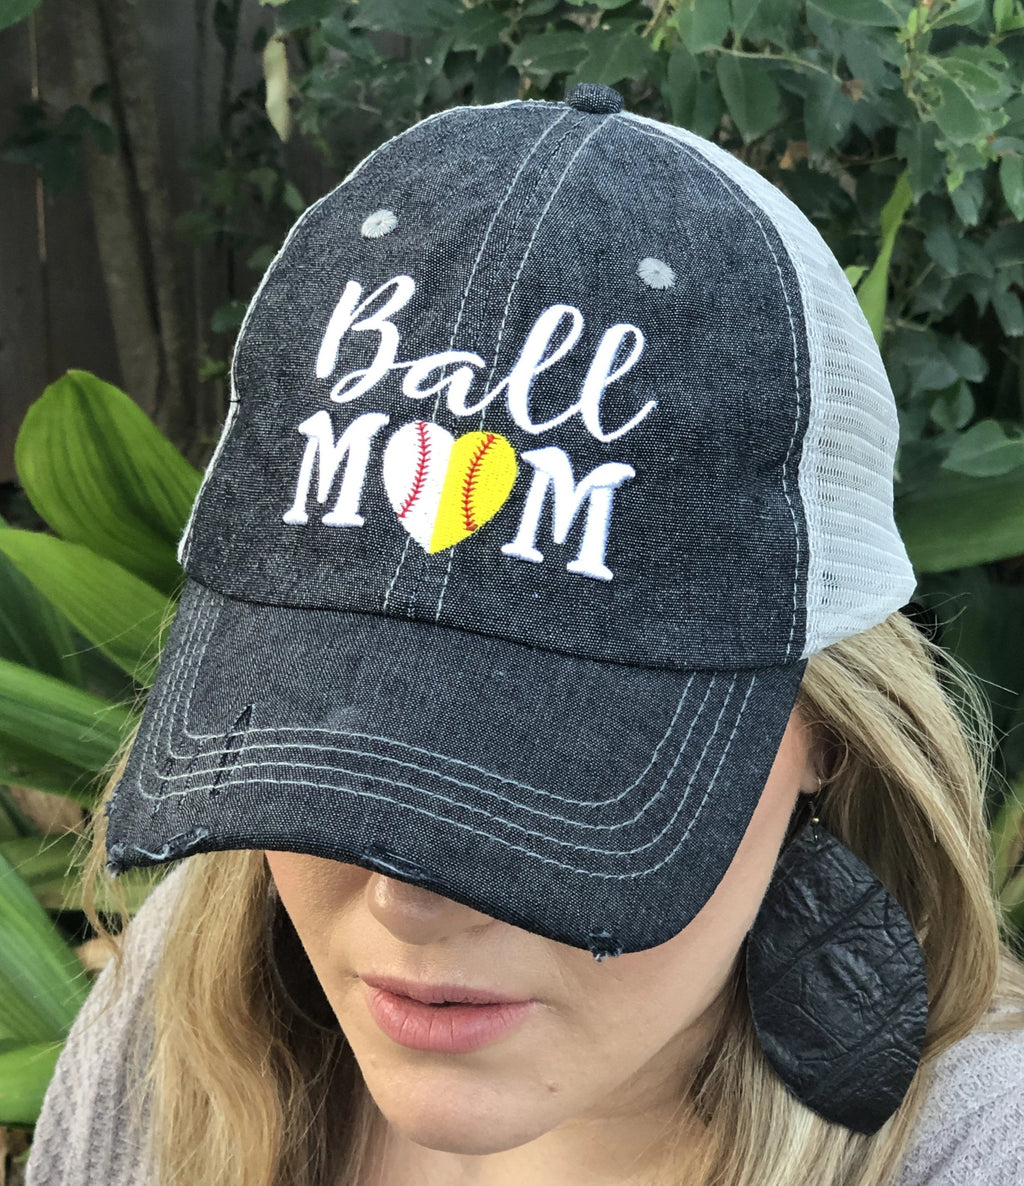 Ball Mom Half Baseball Half Softball Baseball MOM Softball MOM Mesh Embroidered MESH Hat Trucker Hat Cap